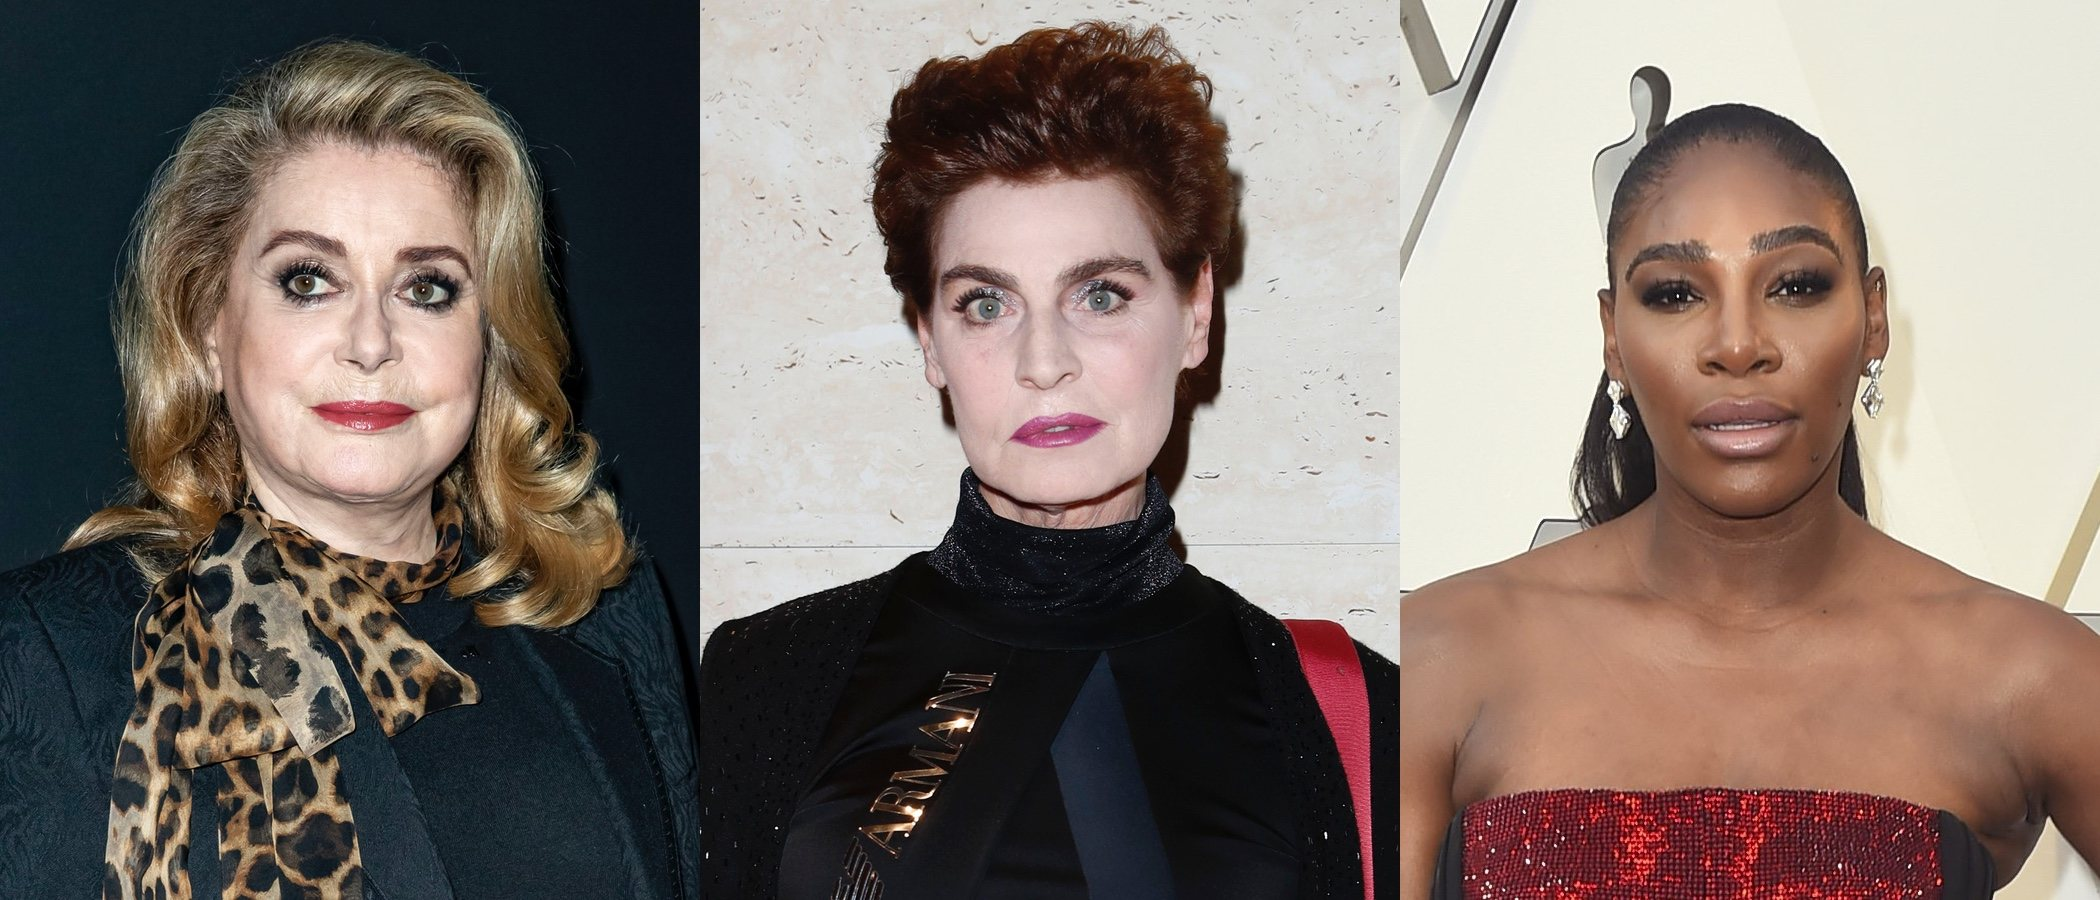 Catherine Deneuve, Antonia Dell'Atte y Ashley Brinton lucen los peores beauty looks de la semana